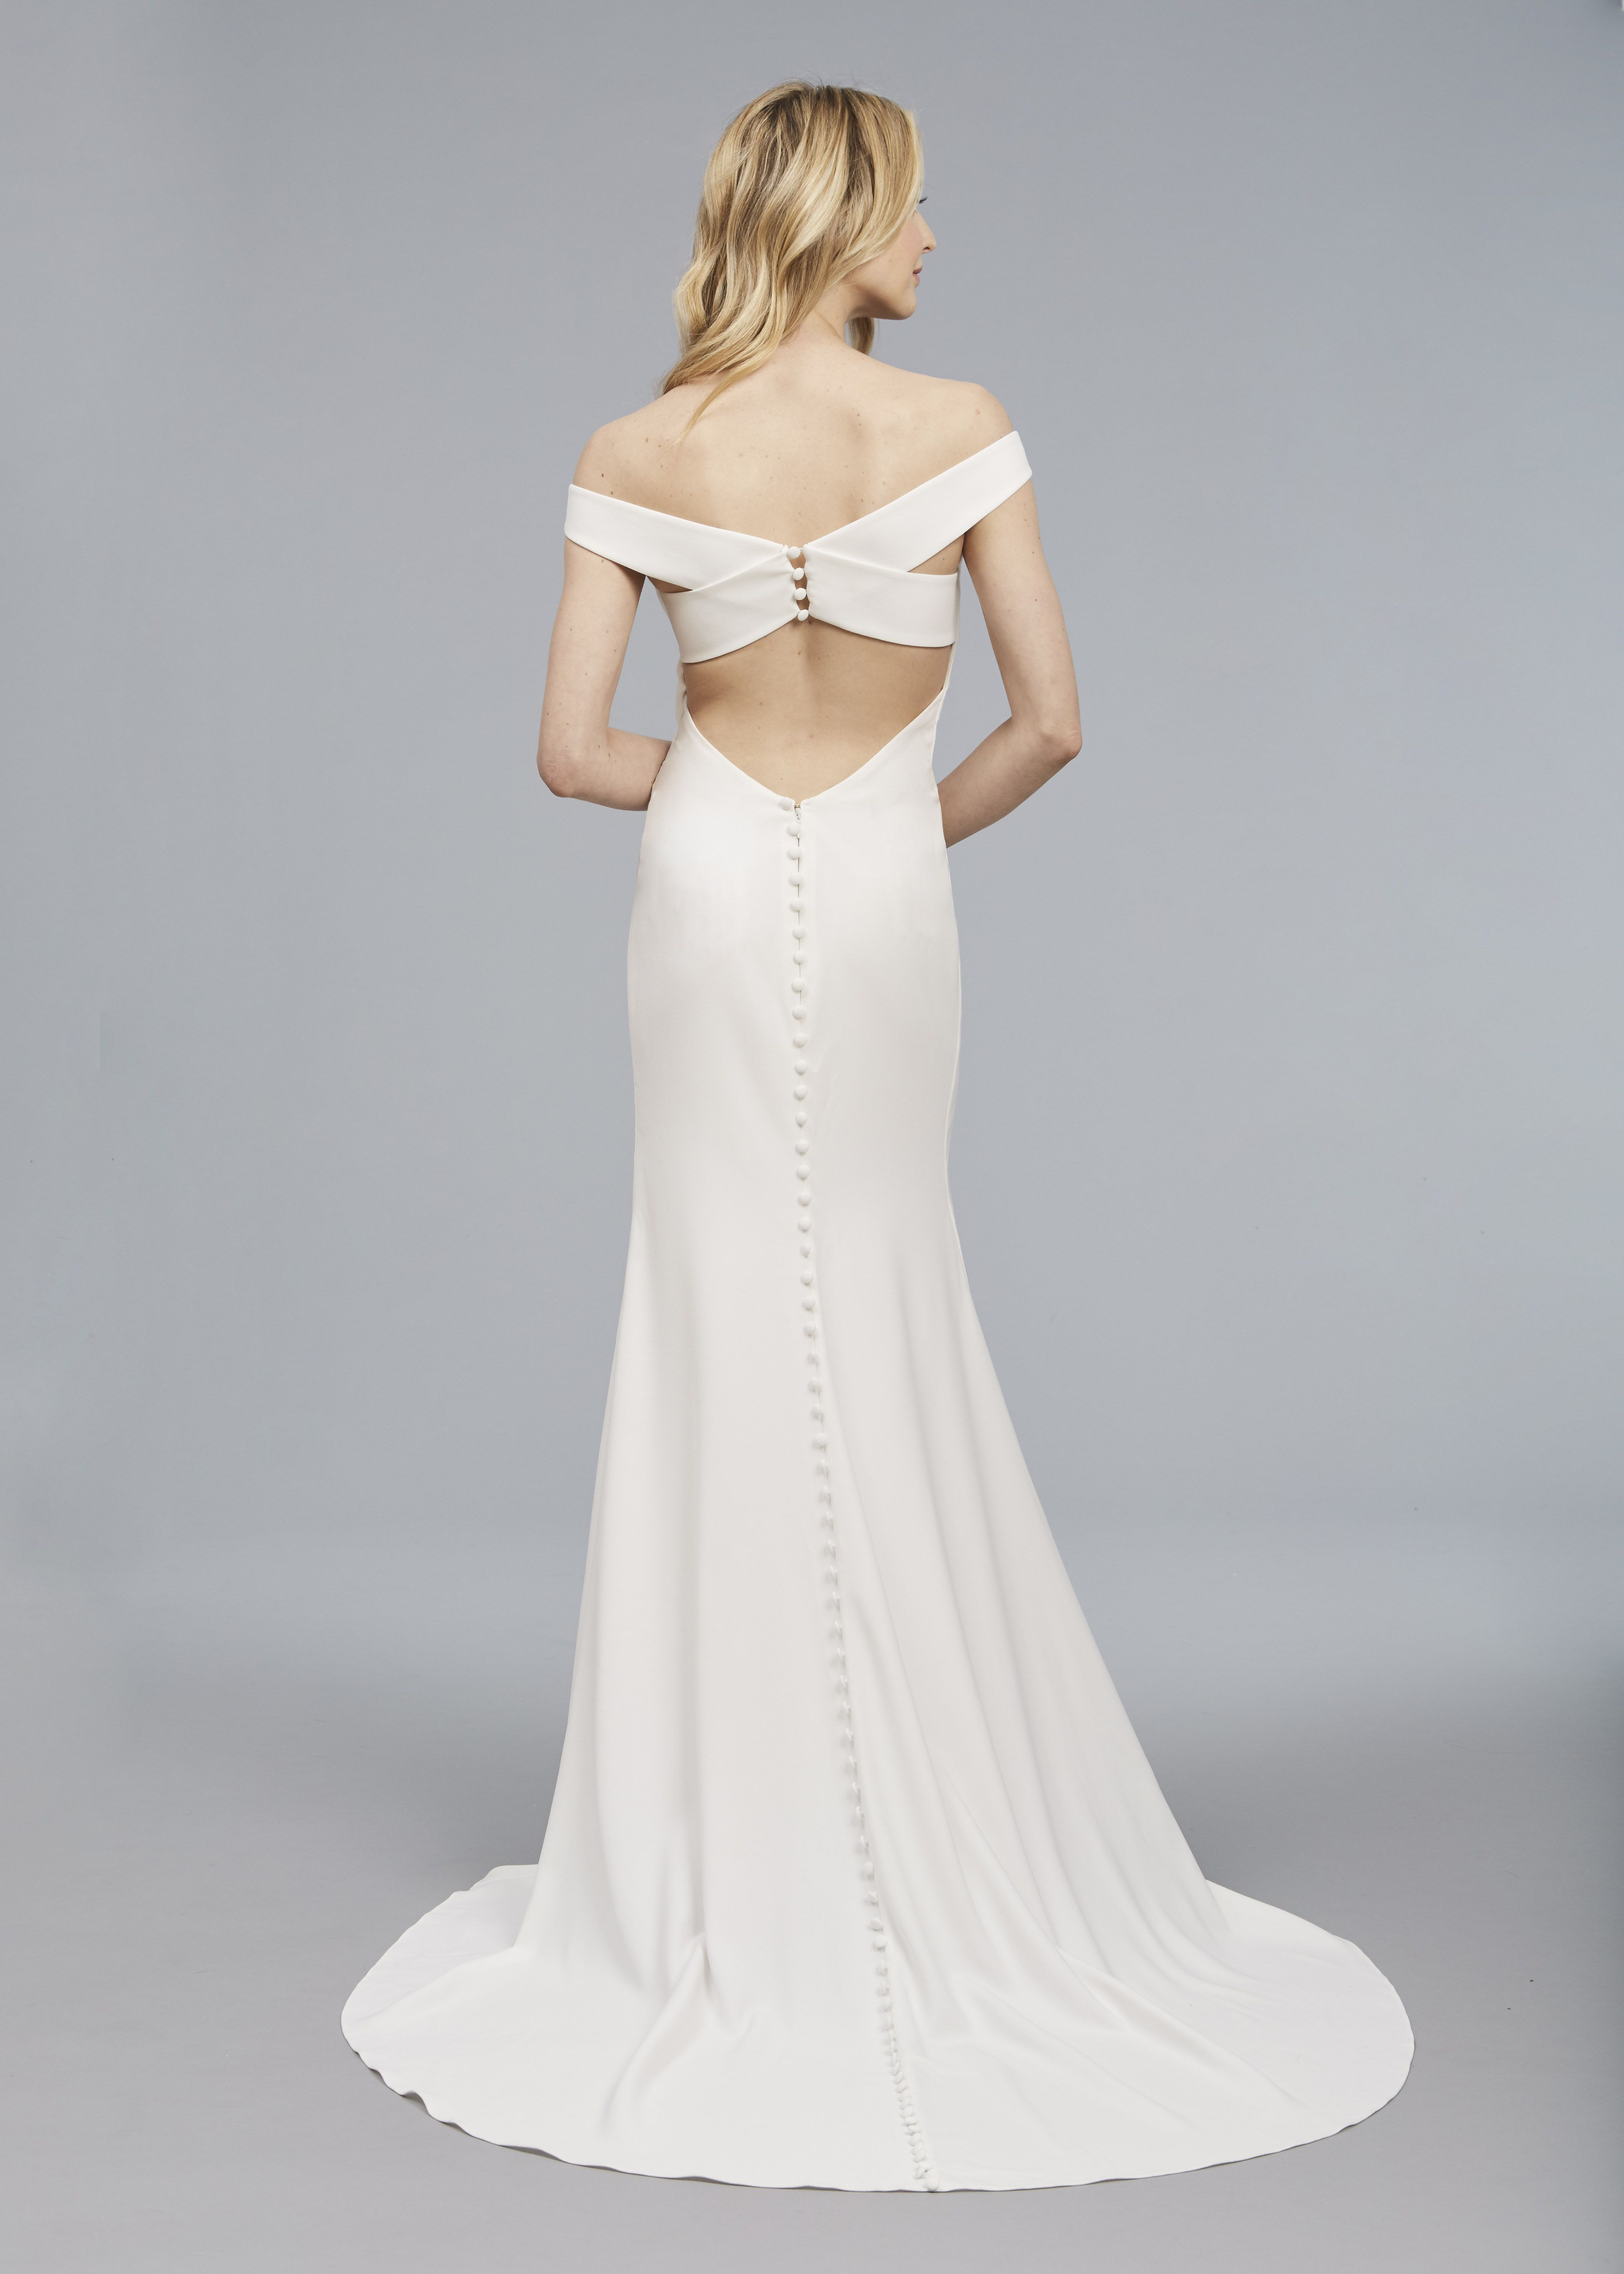 ROMY  Blue Willow Bride Spring 2018  Wedding dress with